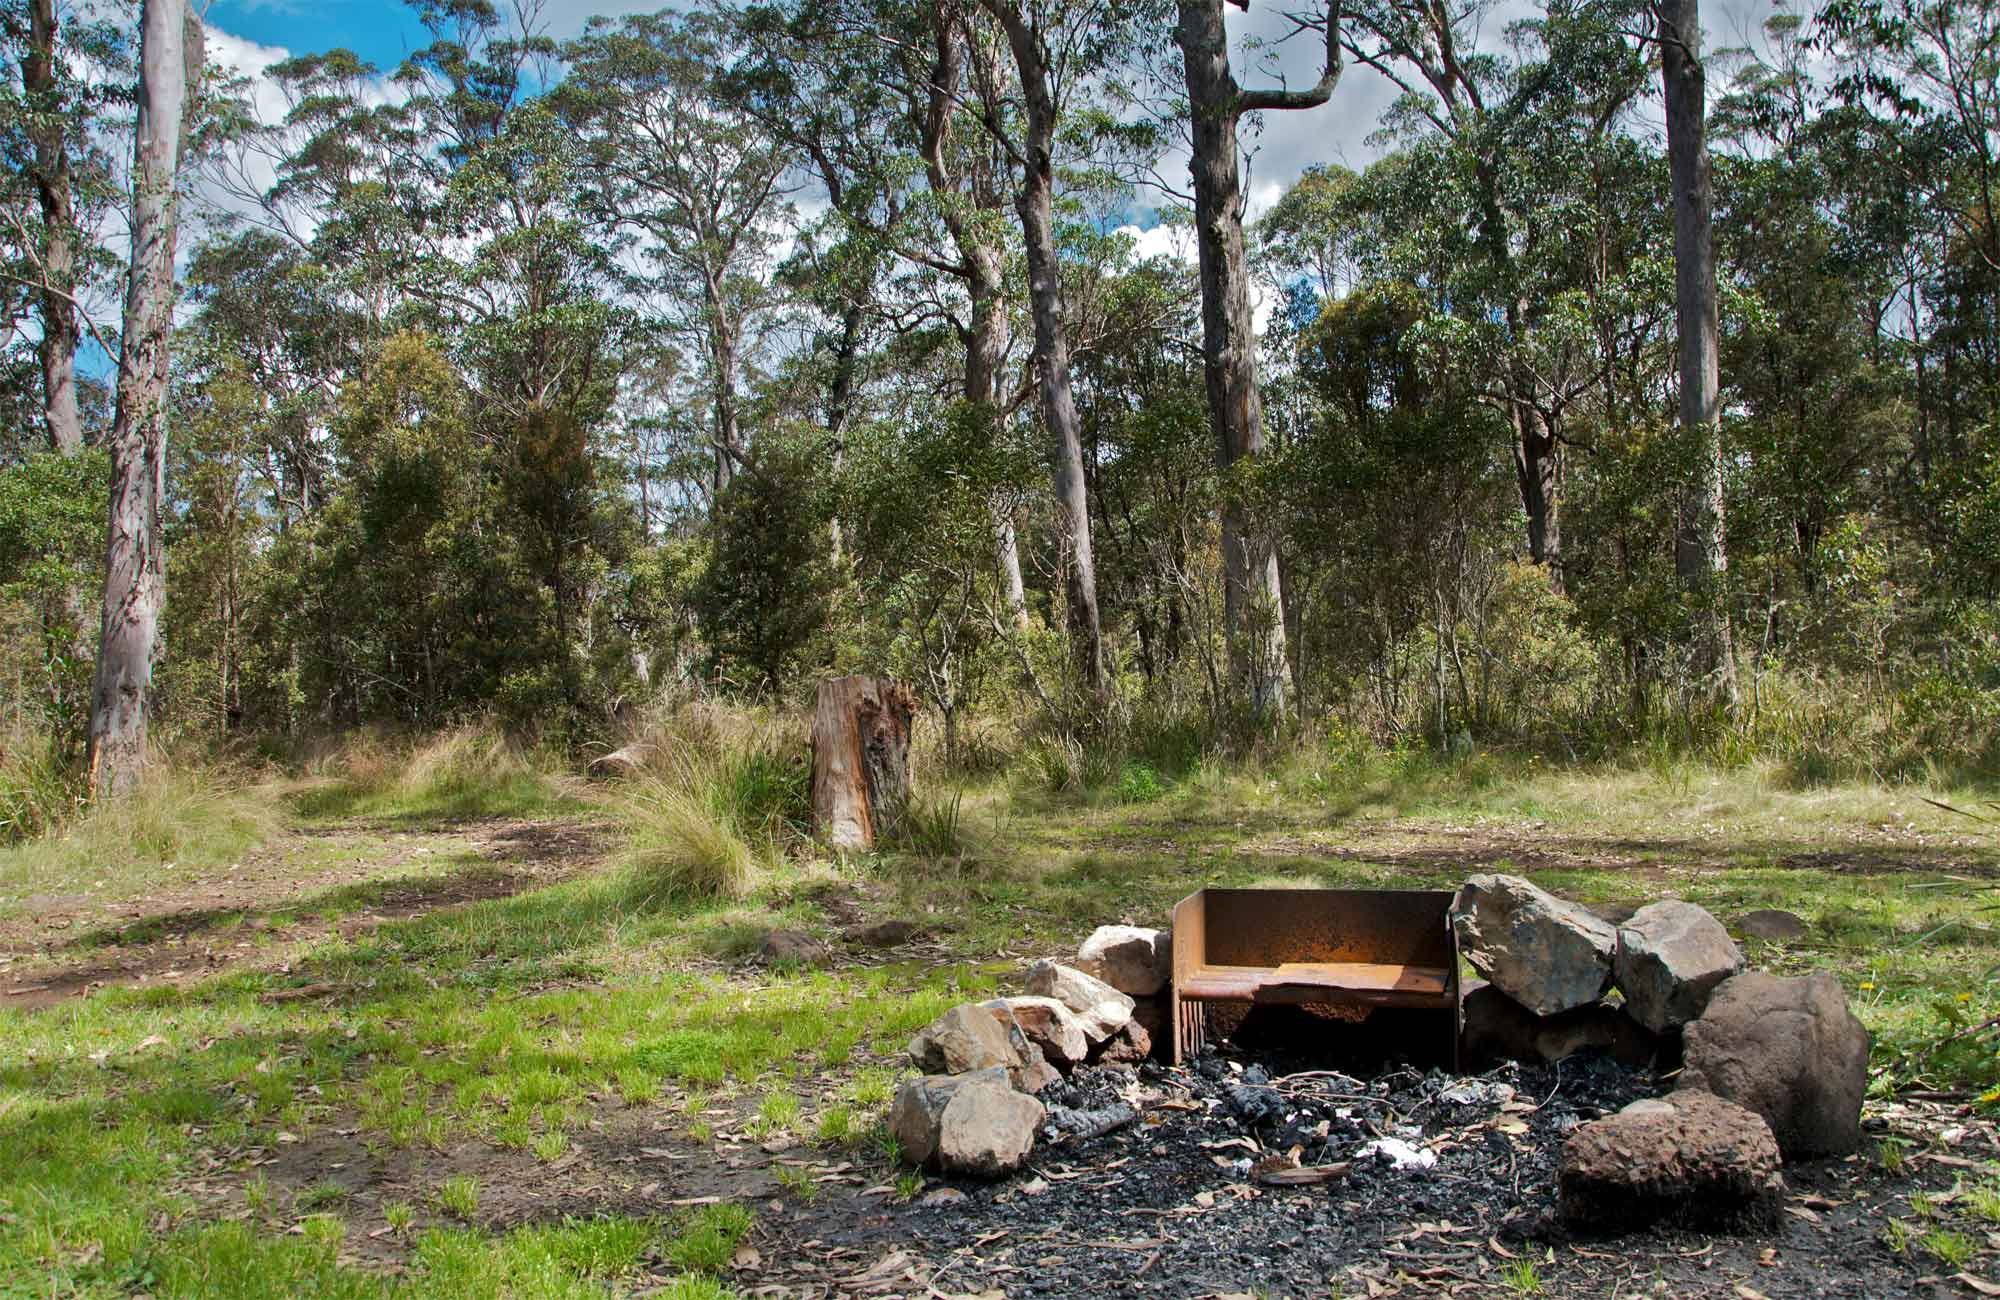 Devils Hole campground, Barrington Tops National Park. Photo: John Spencer/NSW Government